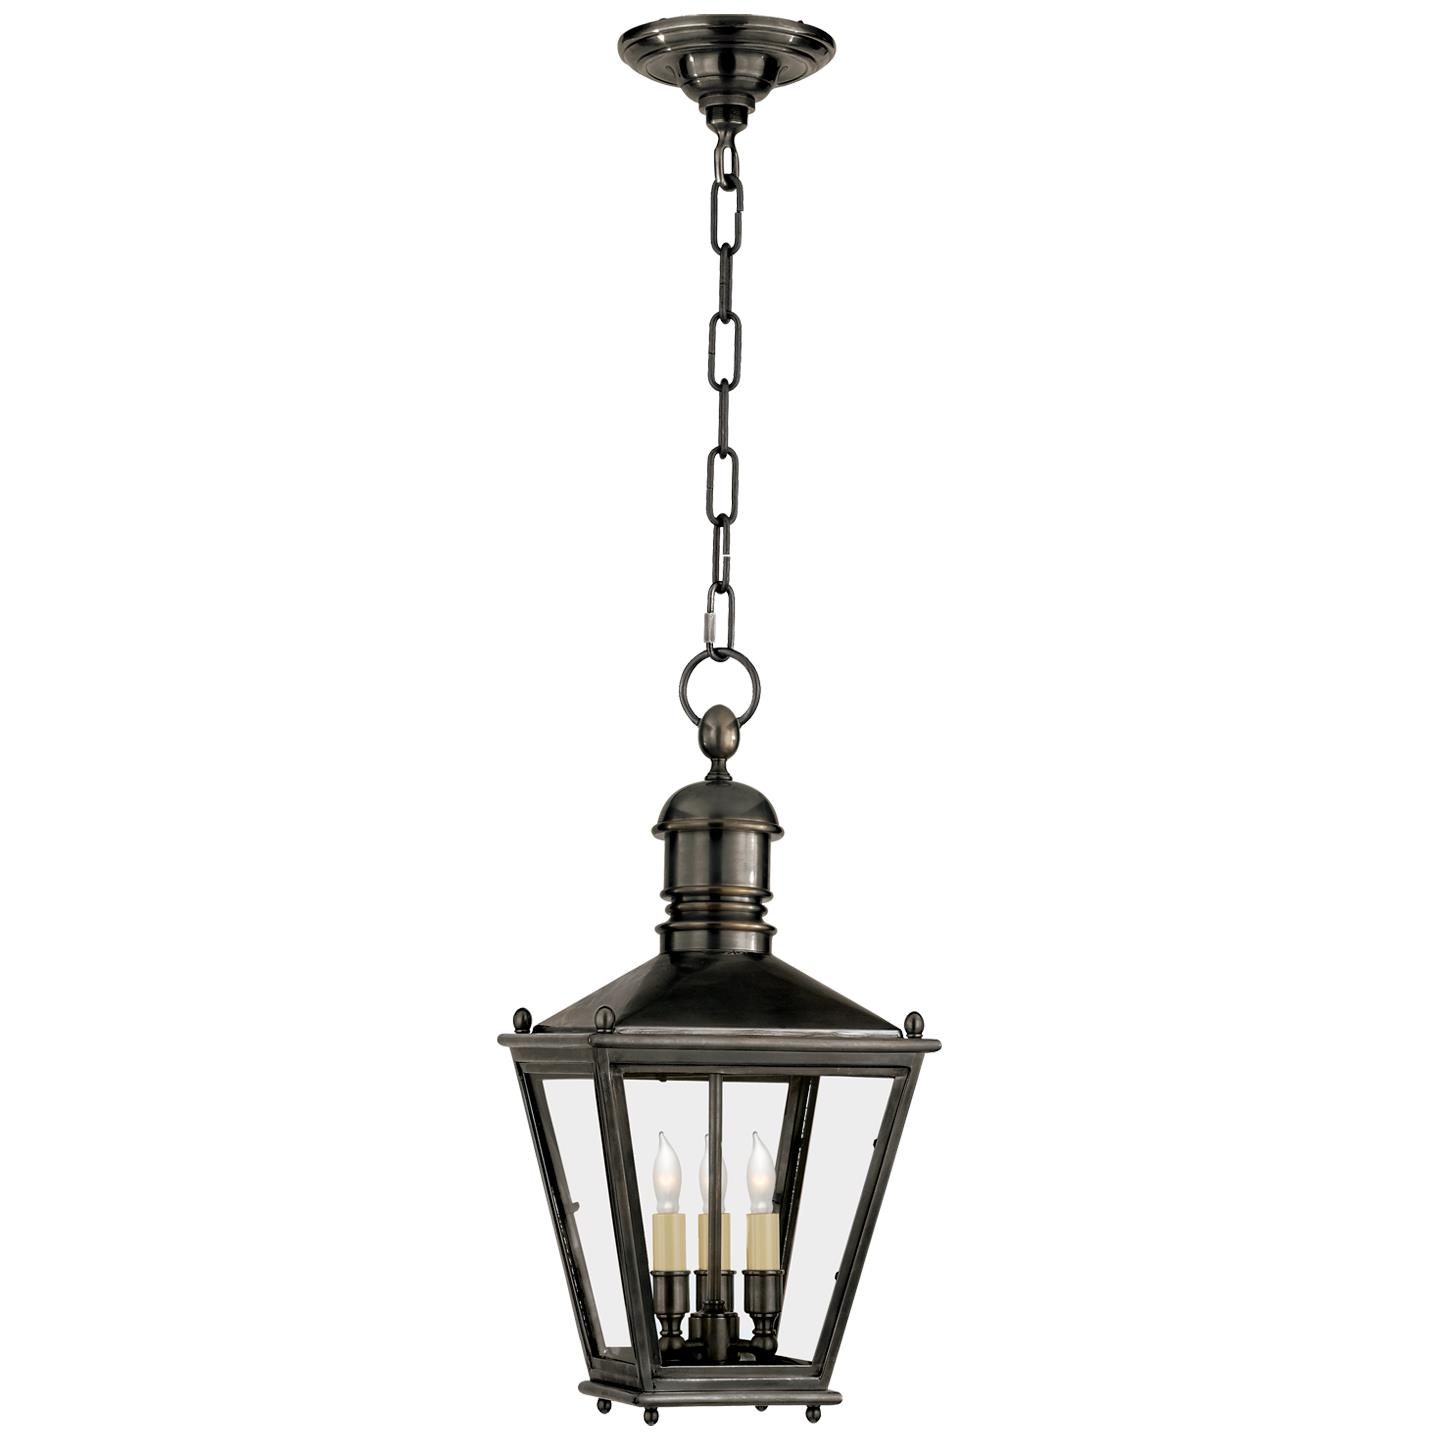 Sussex Small Hanging Lantern